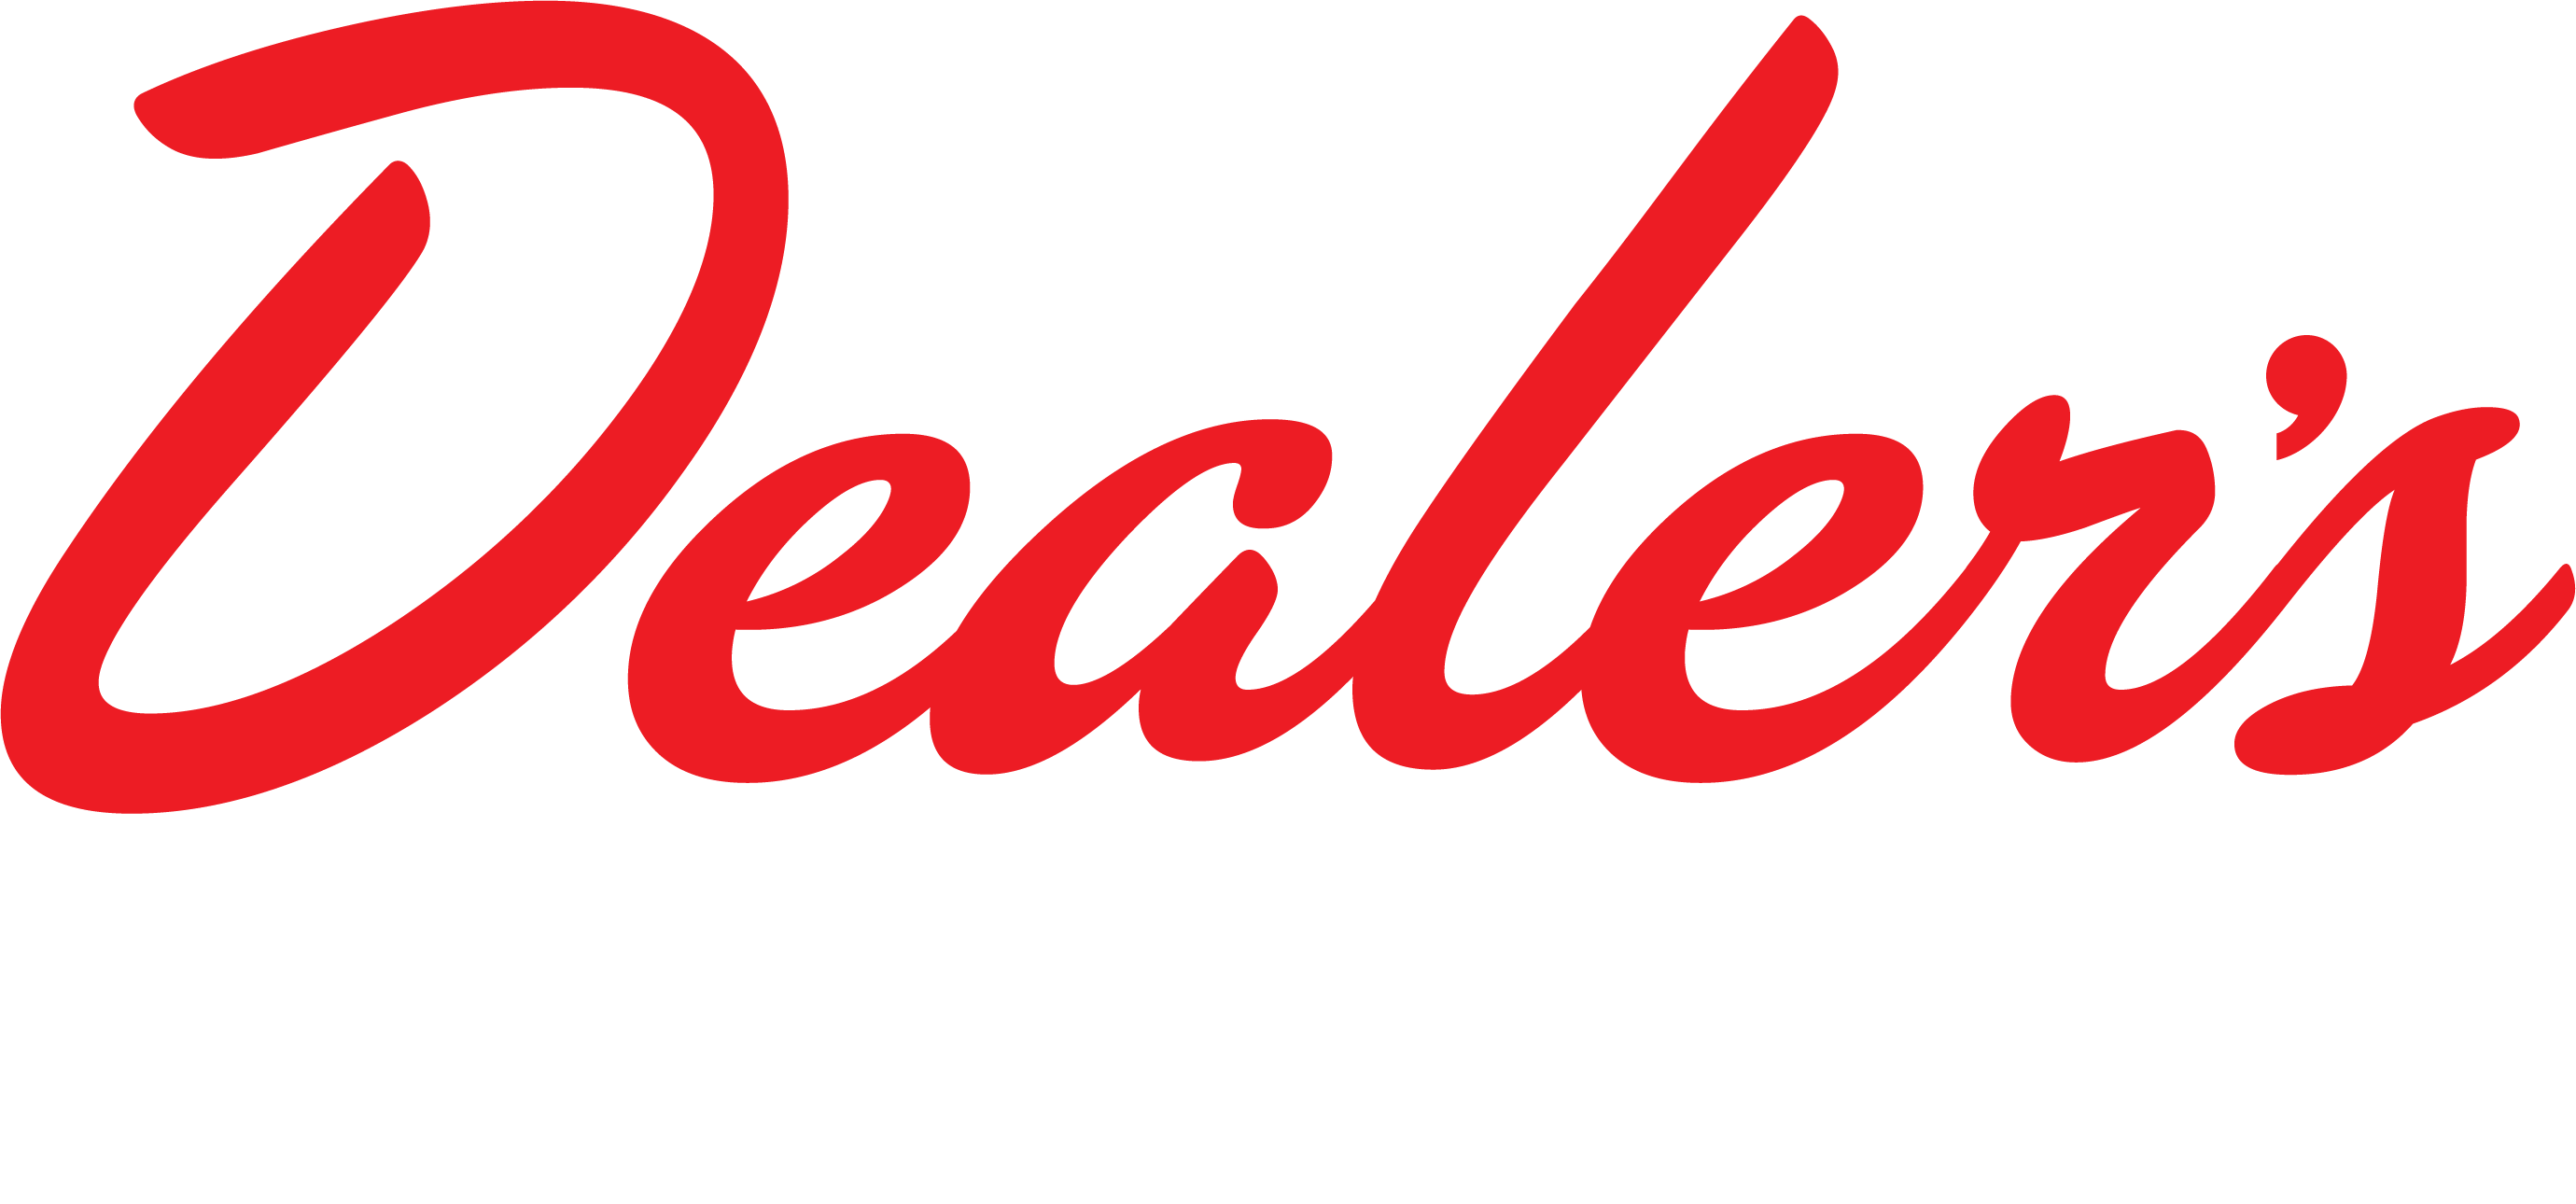 The Dealers News